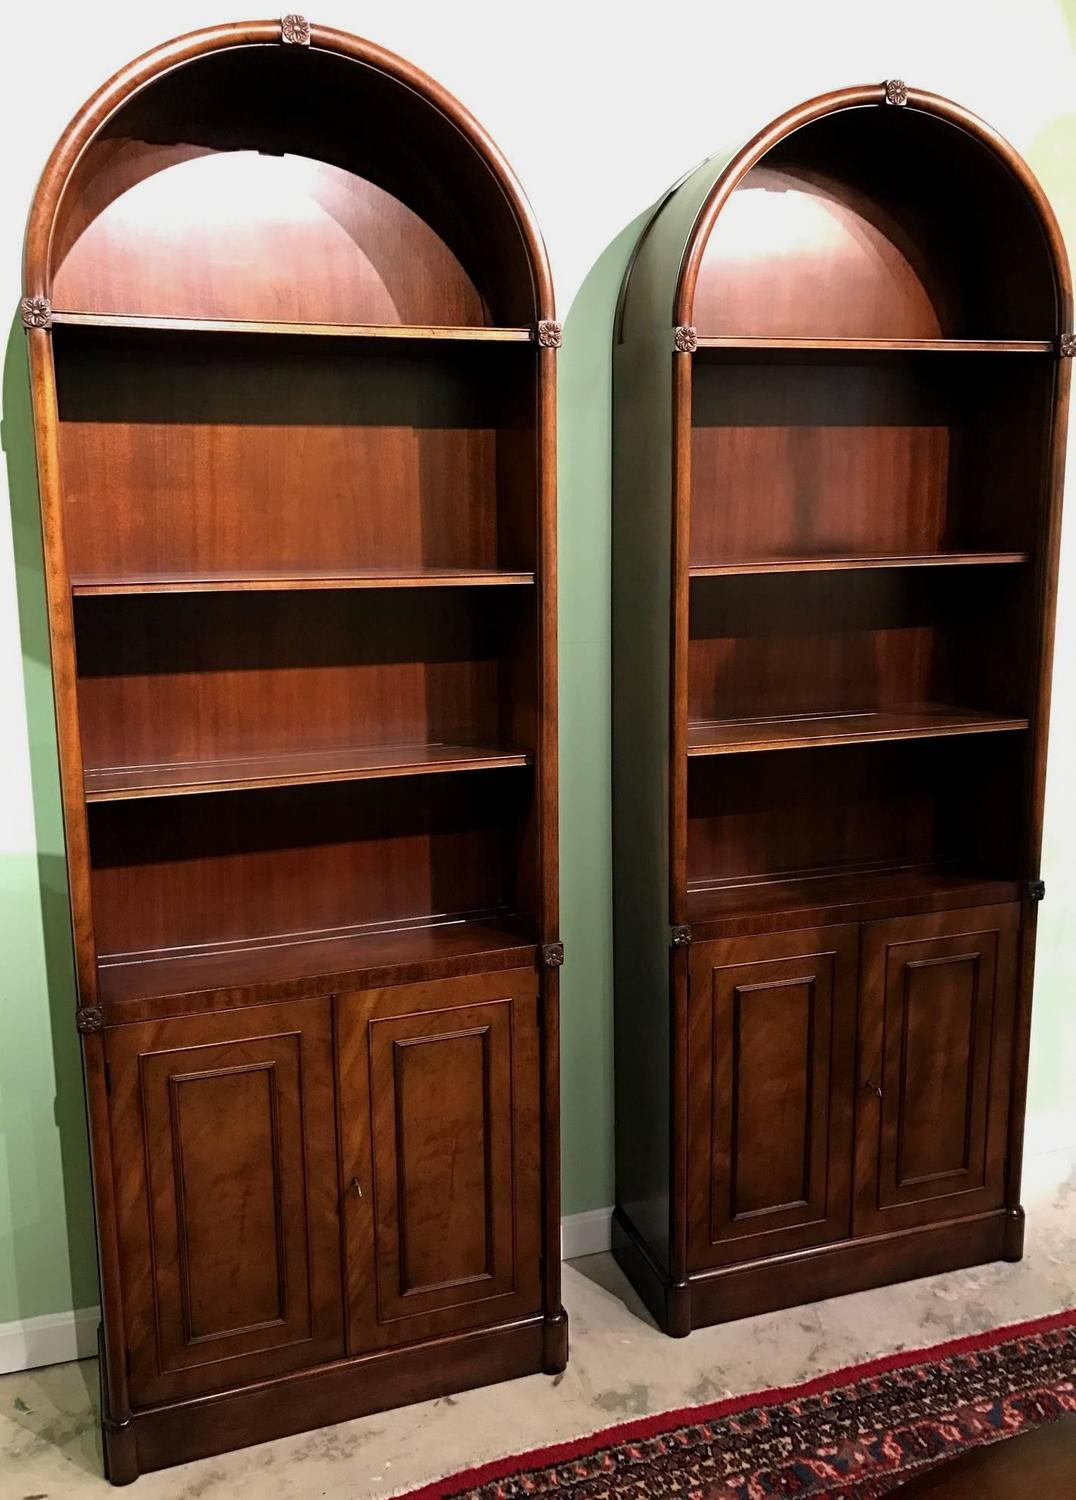 Pair of Mahogany Kaplan Furniture Beacon Hill Arched